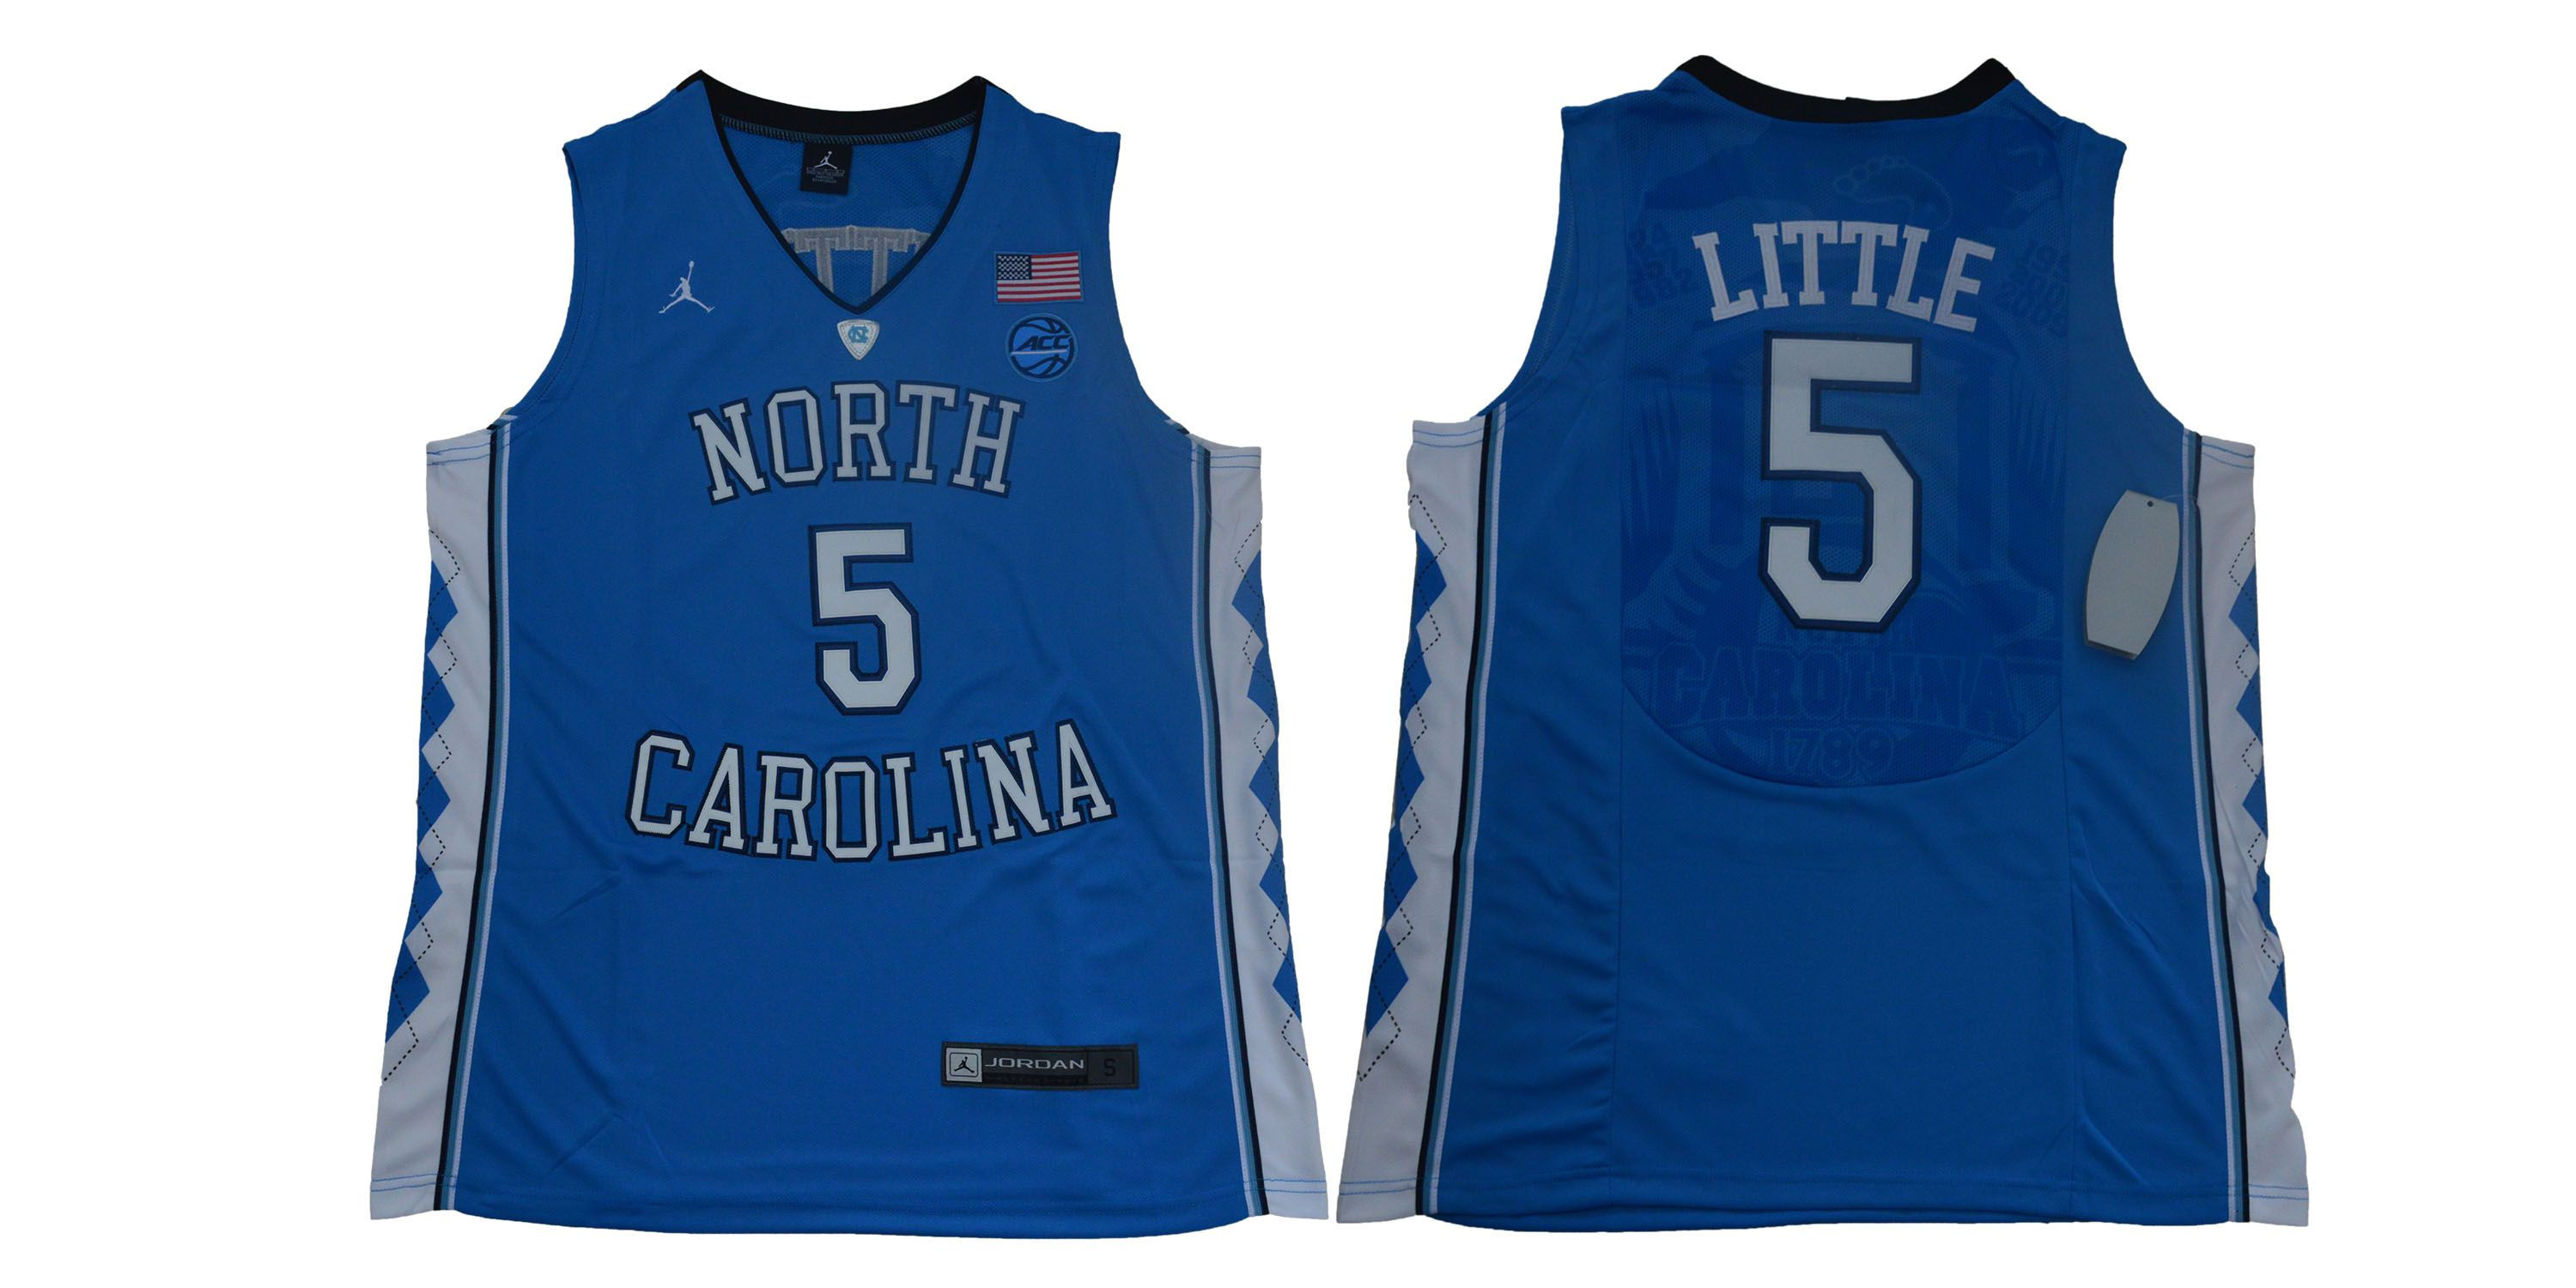 Men North Carolina Tar Heels 5 Little Blue NBA NCAA Jerseys